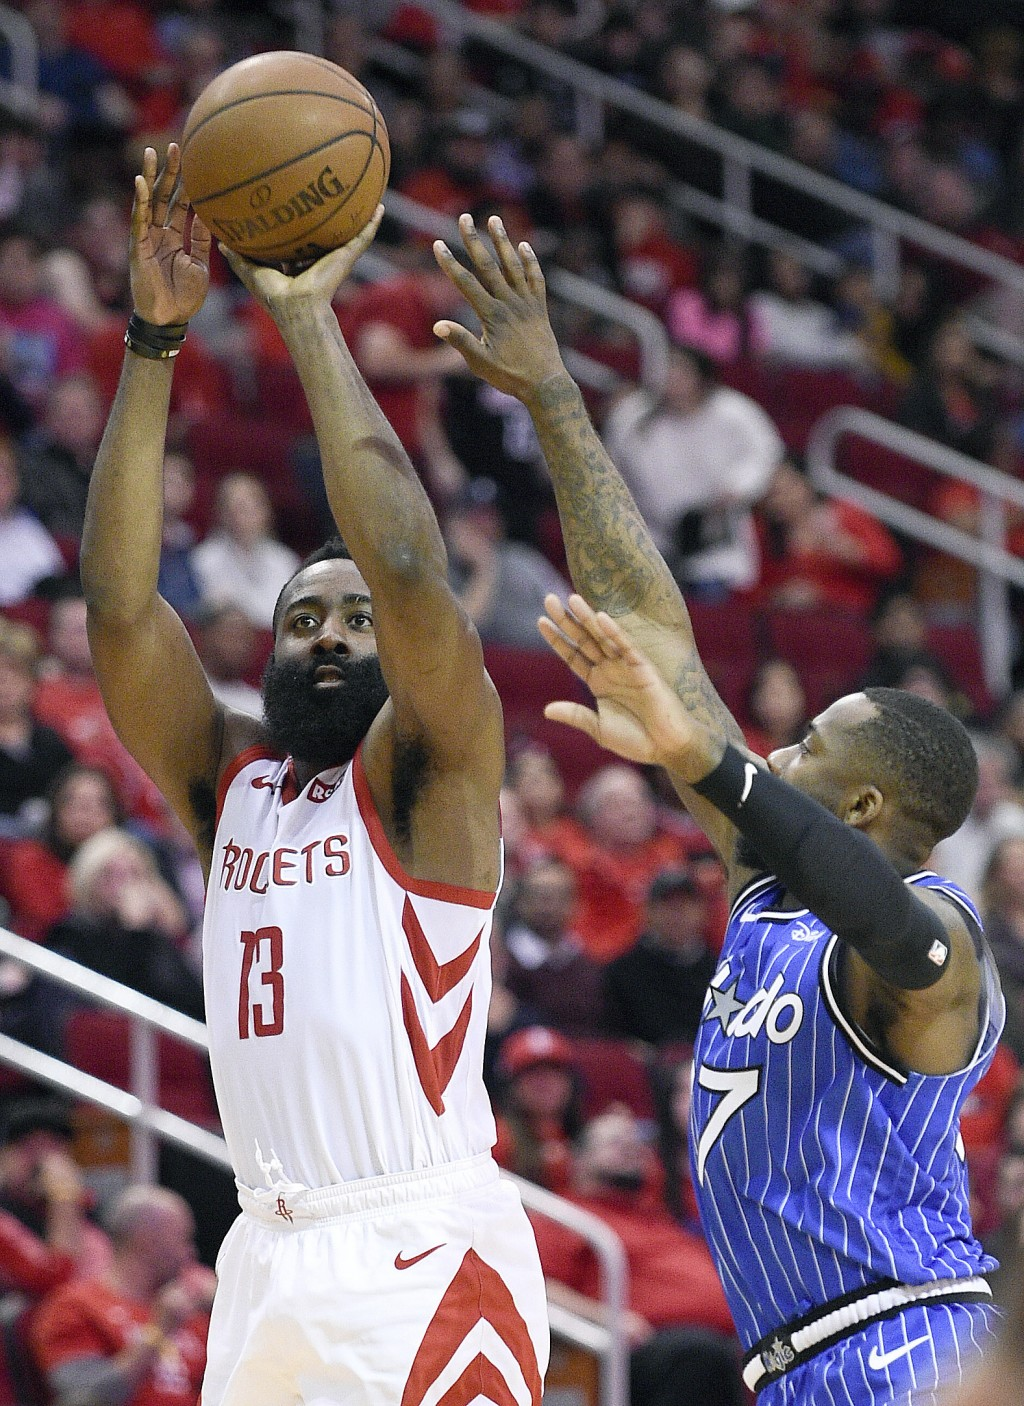 Houston Rockets guard James Harden (13) shoots as Orlando Magic forward Jonathon Simmons defends during the second half of an NBA basketball game, Sun...